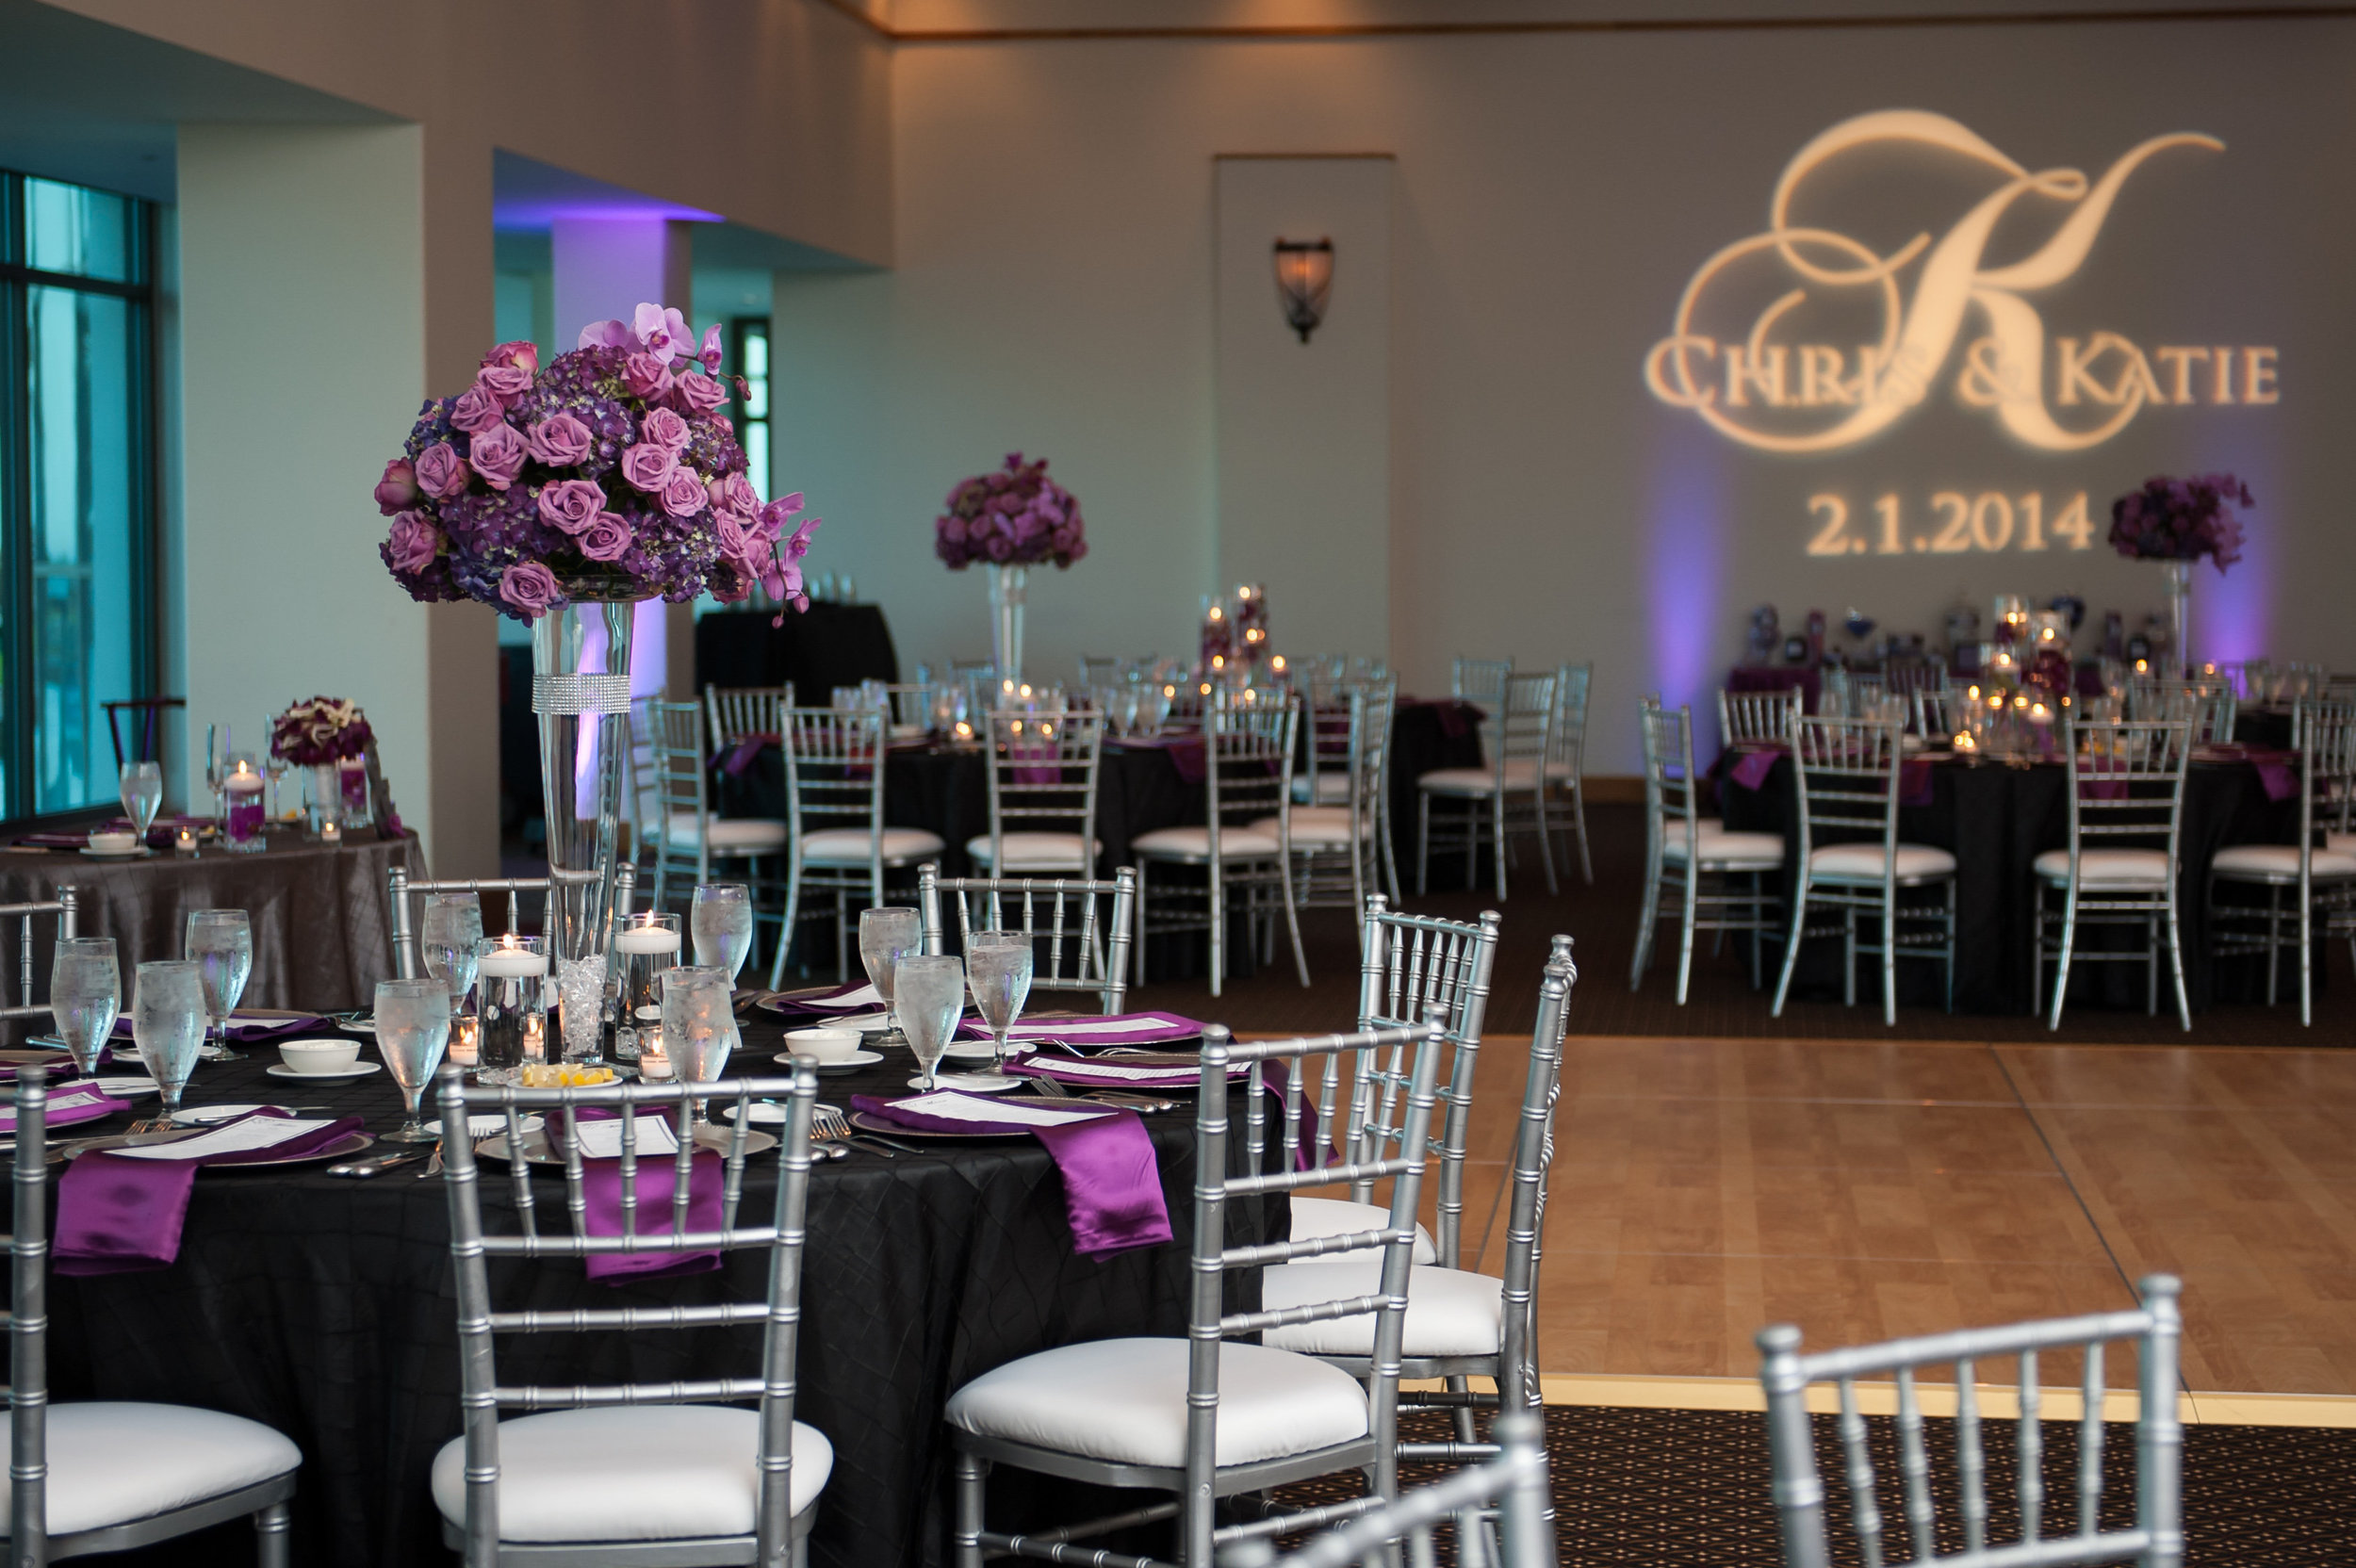 The ballroom featured tables dressed in onyx linens with silver accents, and pops of plum.